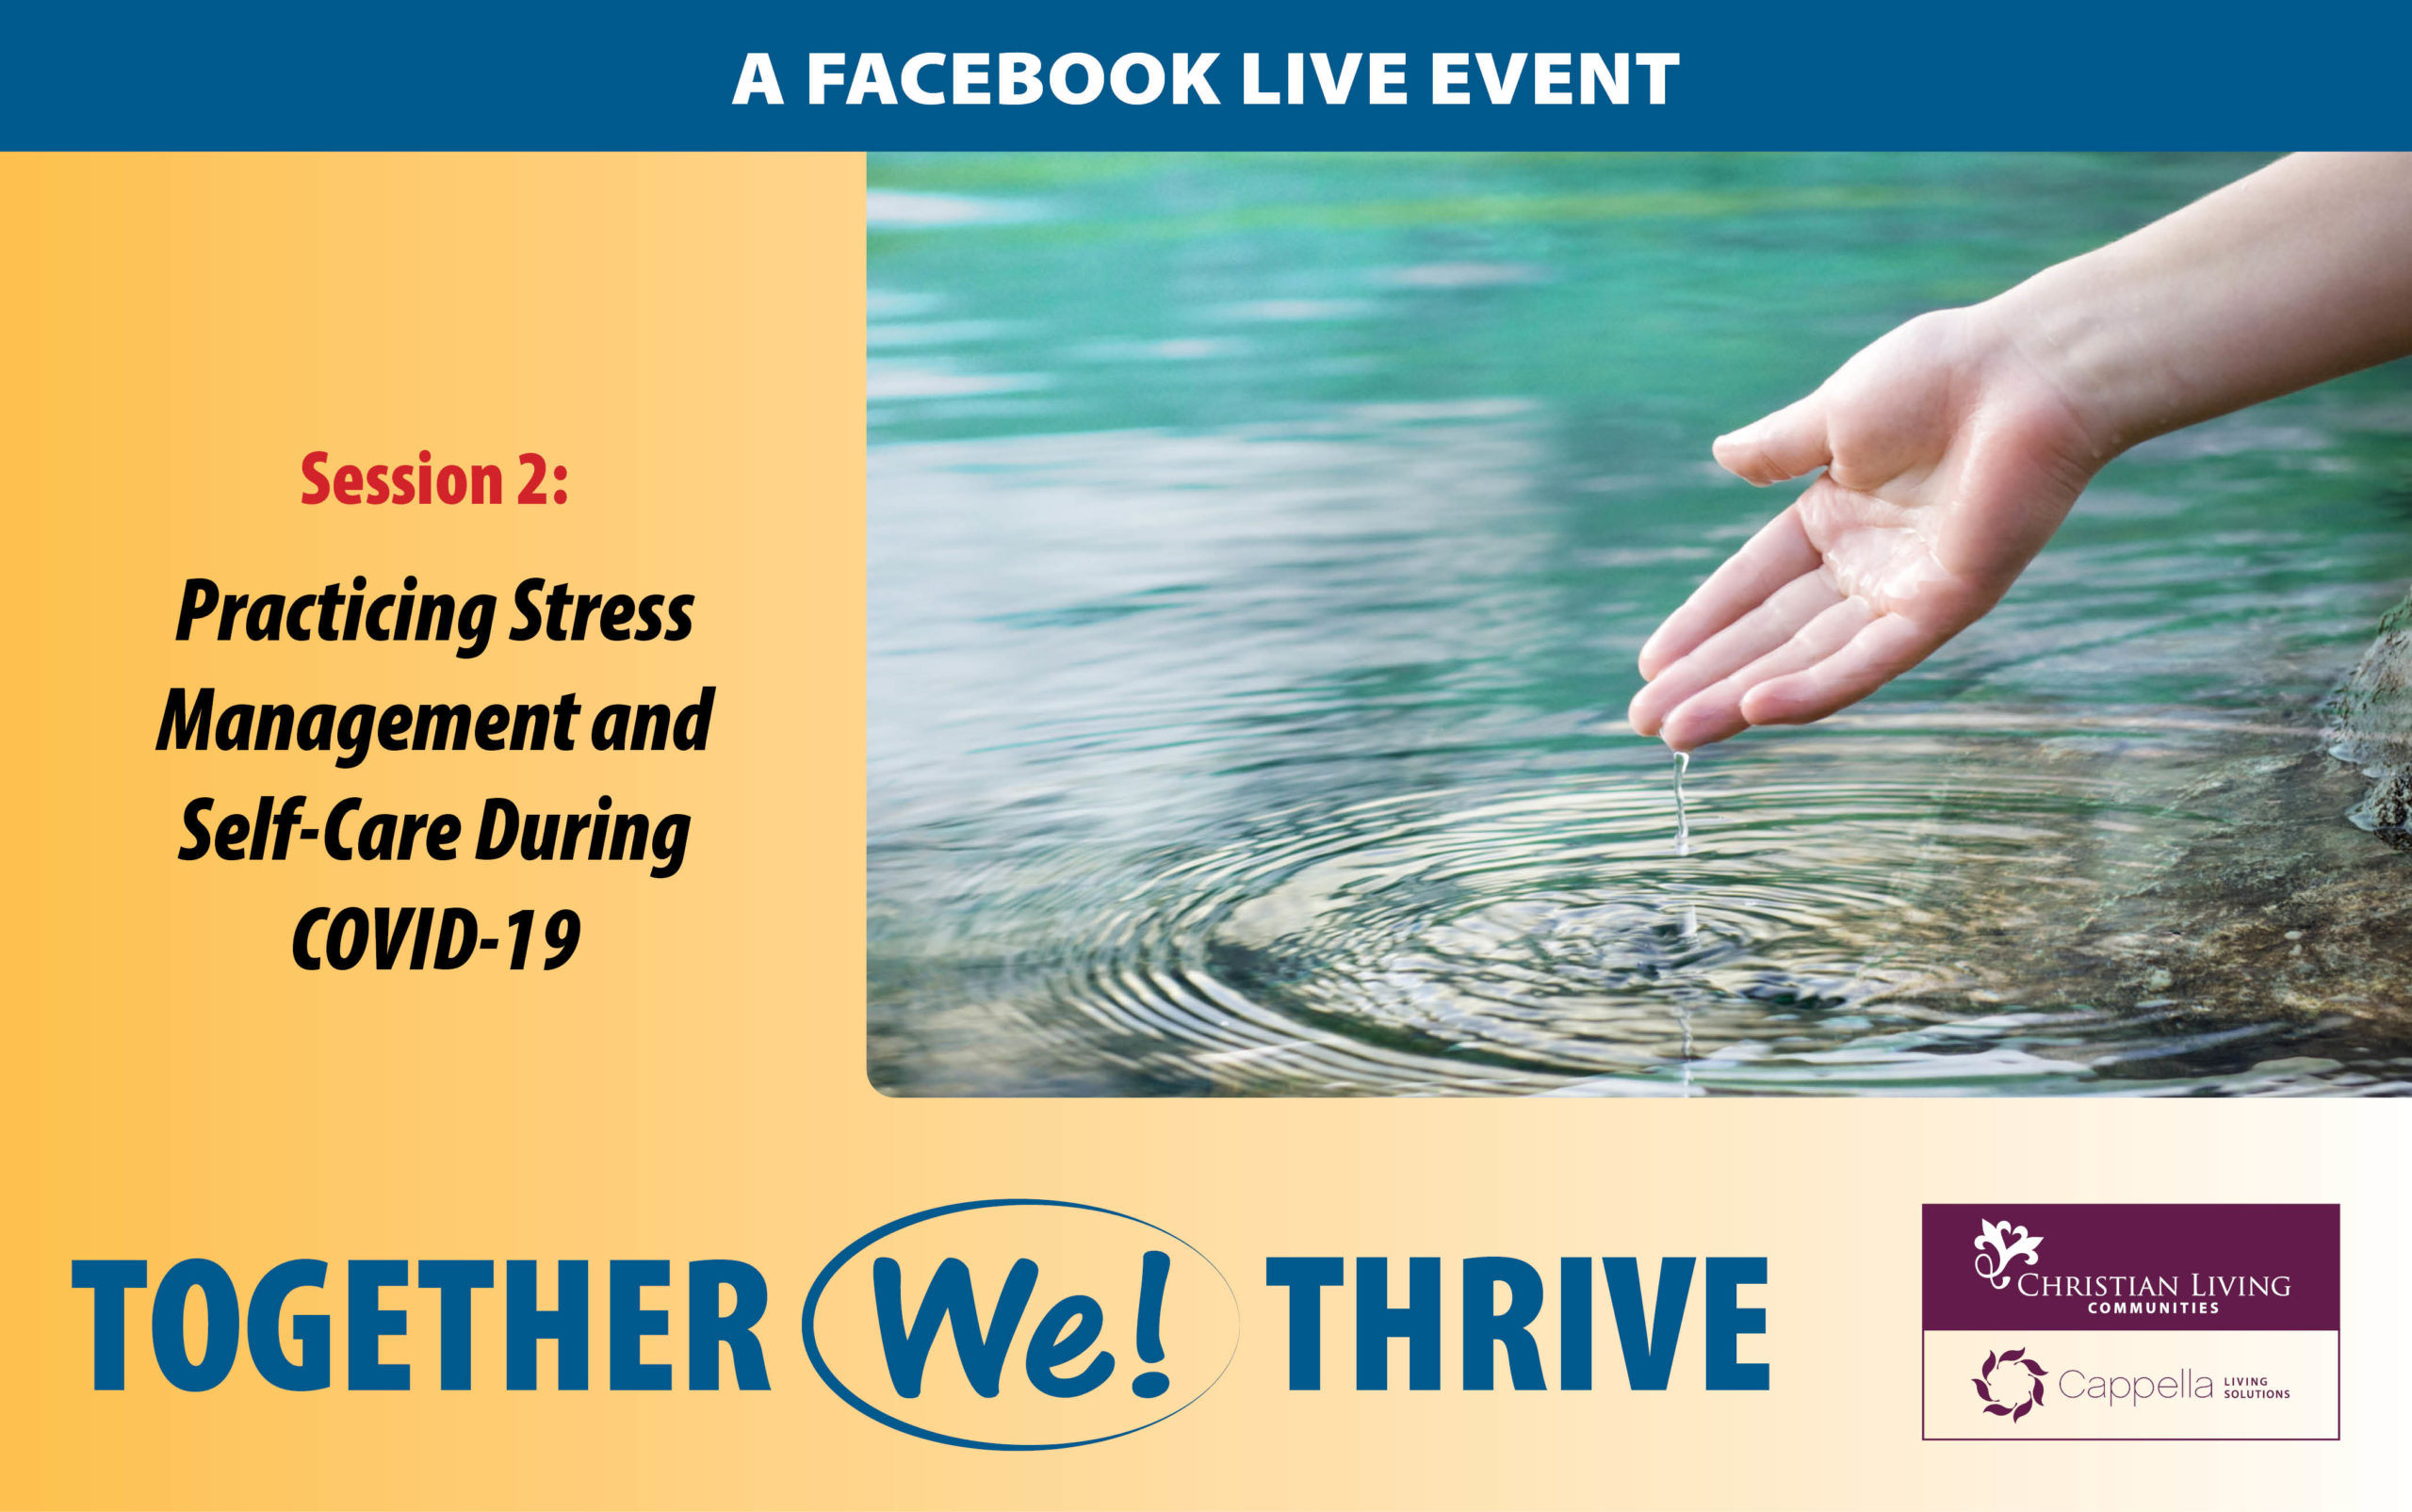 Together we thrive event - 2nd session